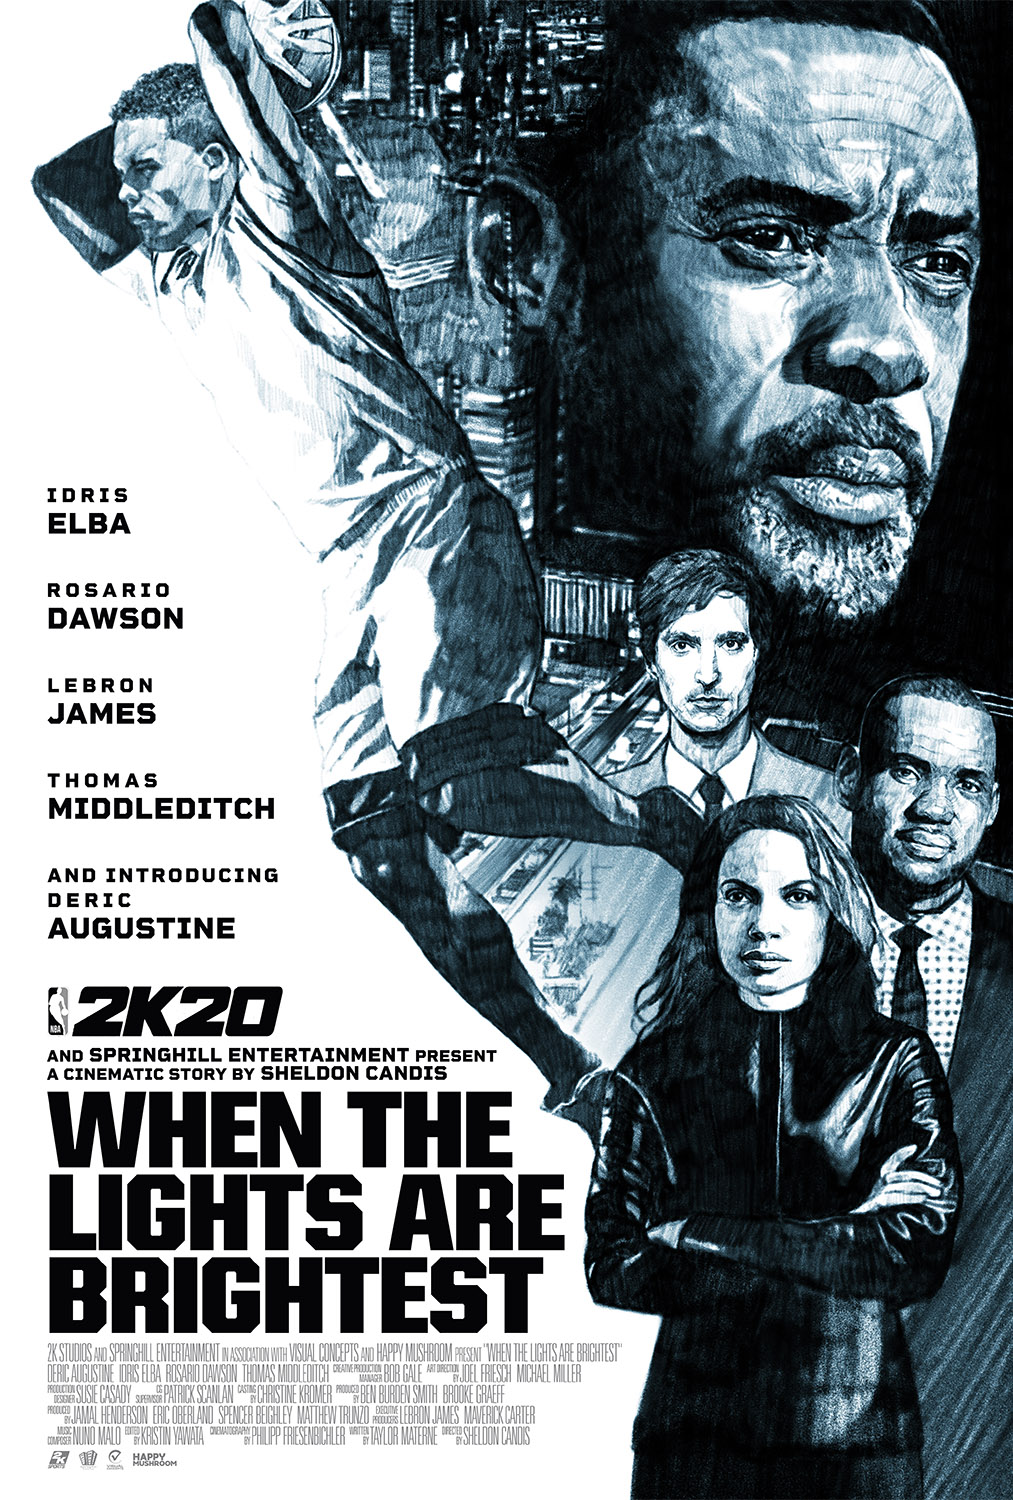 NBA 2K20: When The Lights Are Brightest Movie Poster